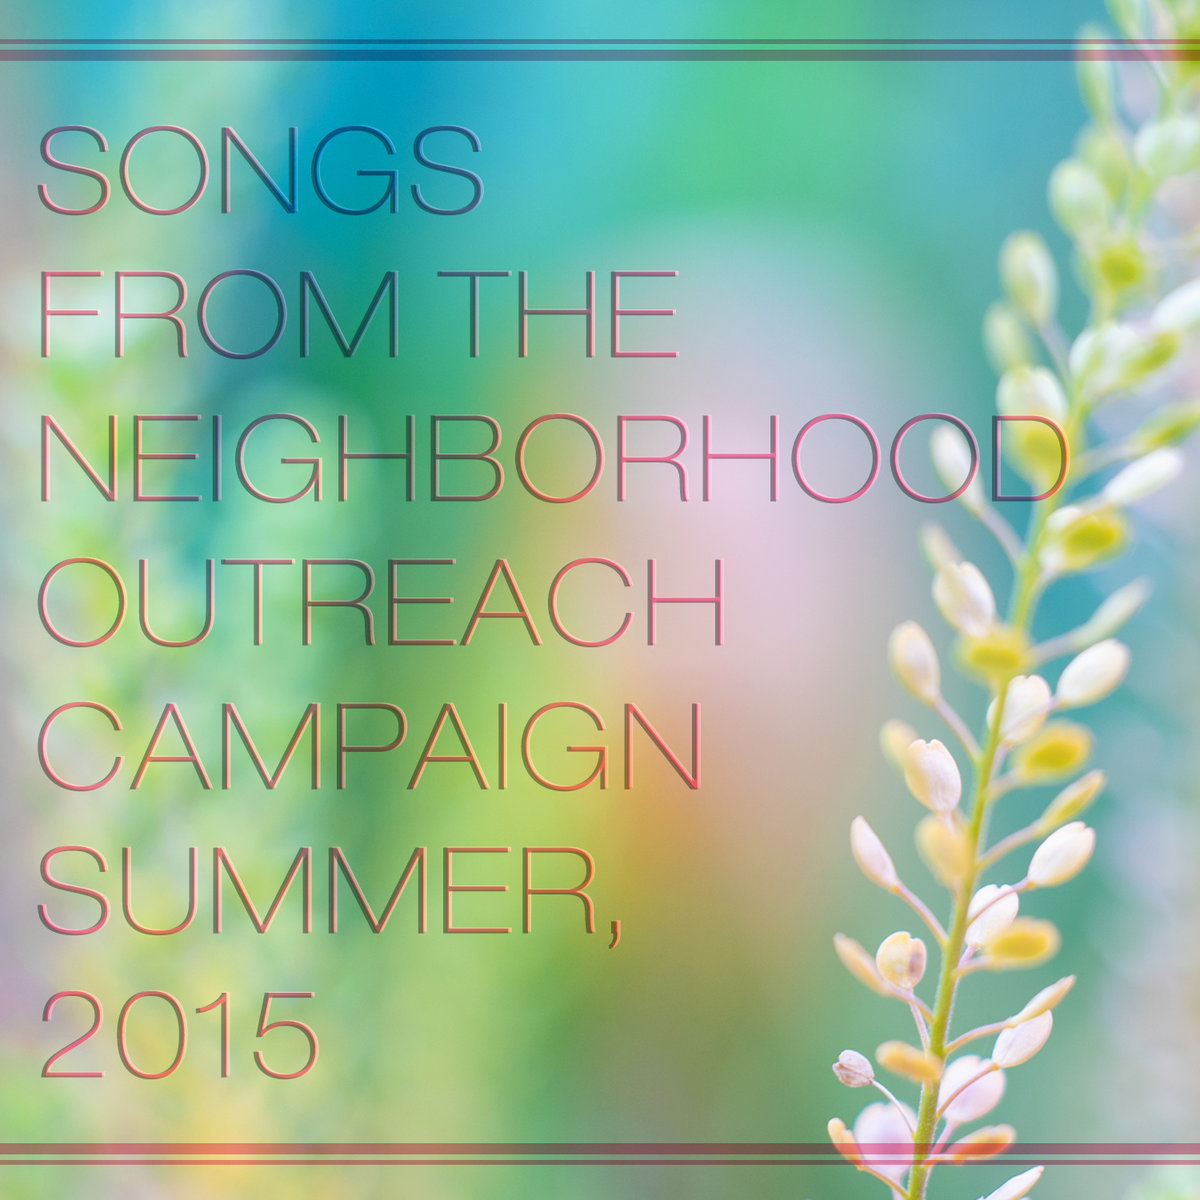 Songs from 2015 Summer Institute Campaign | Chicago Baha'i